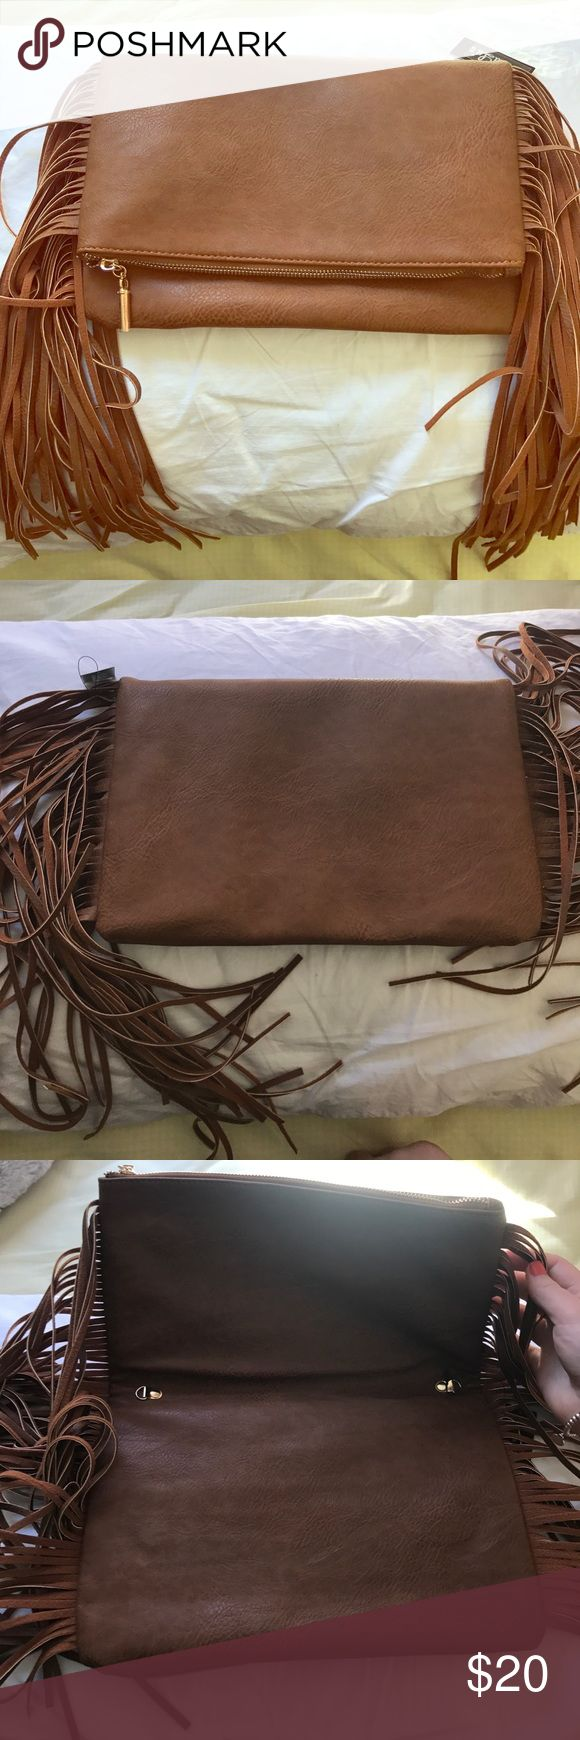 Lulus camel clutch Brown camel leather with gold zippers. Really fun Lulu's Bags Clutches & Wristlets